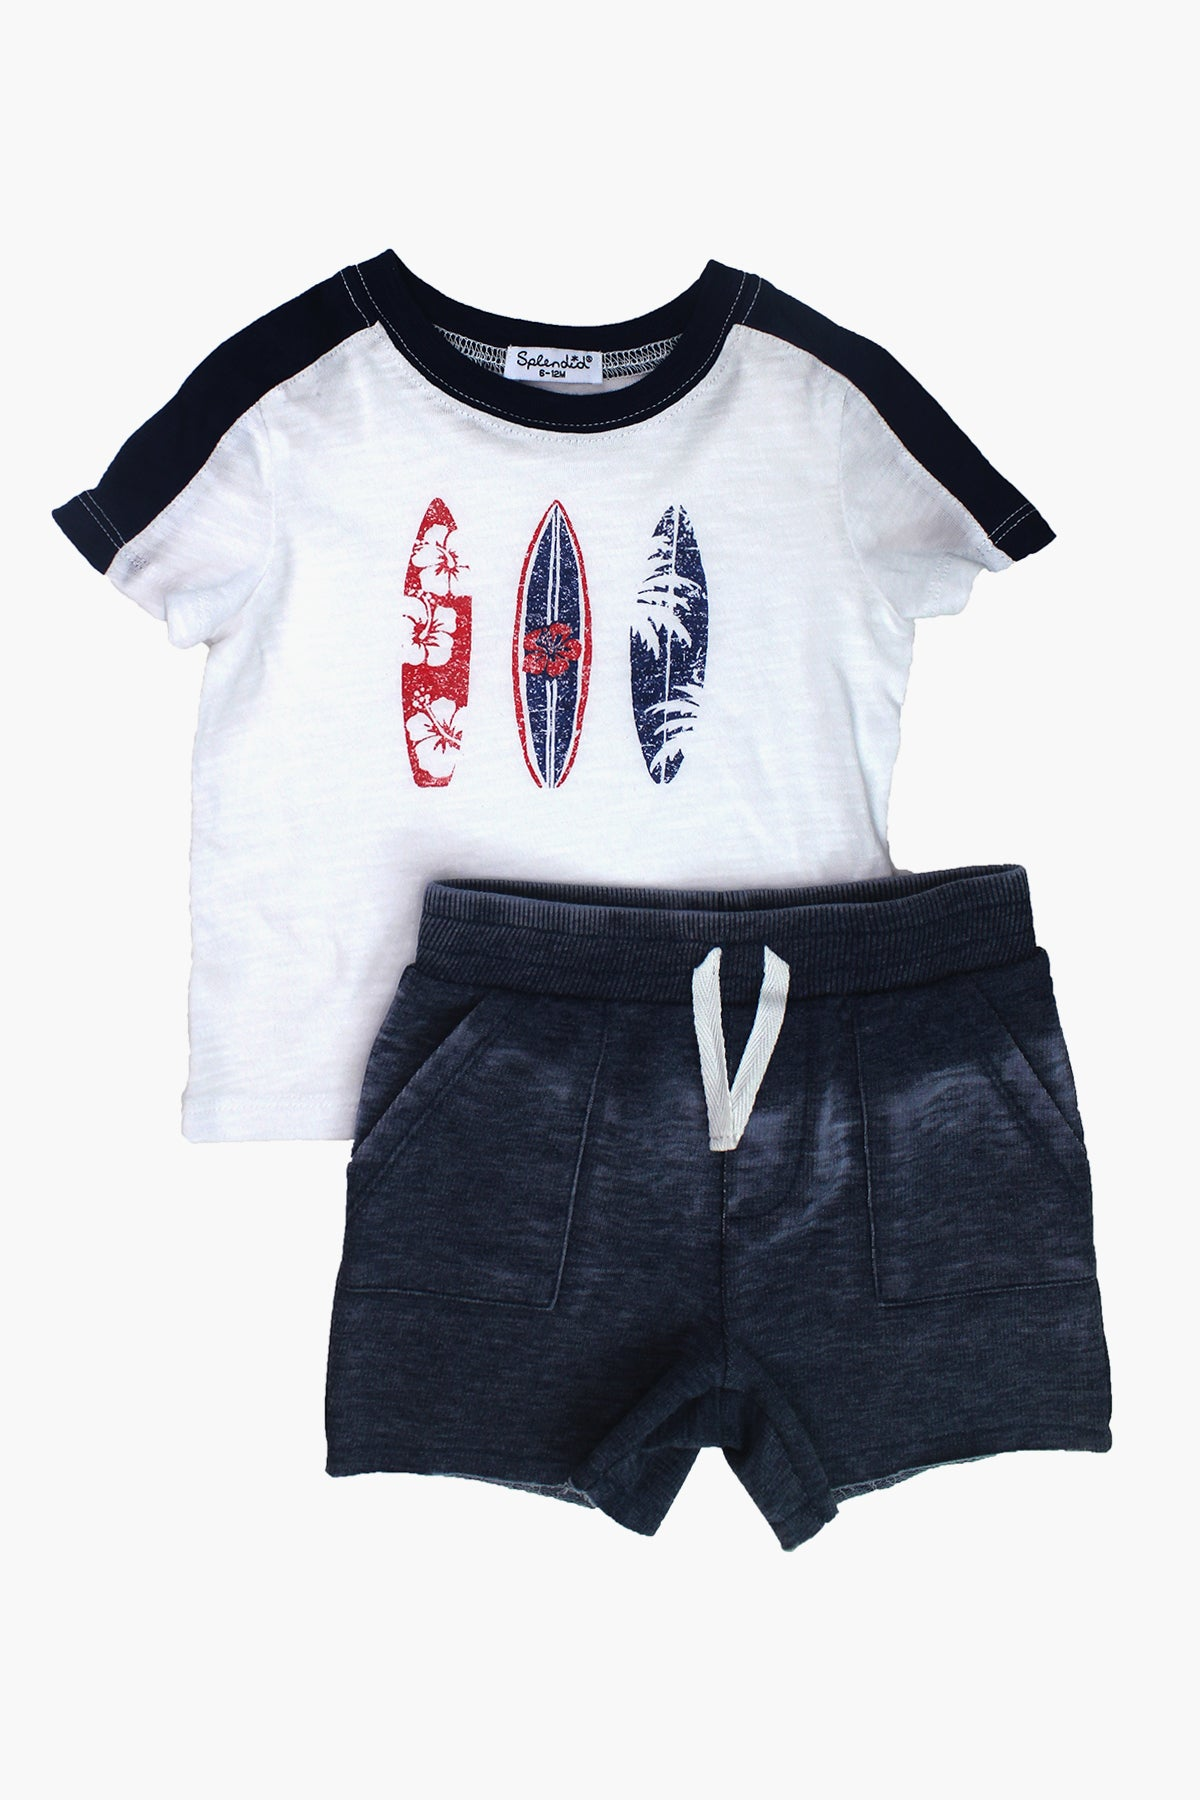 Splendid Surf Board Boys 2-Piece Set